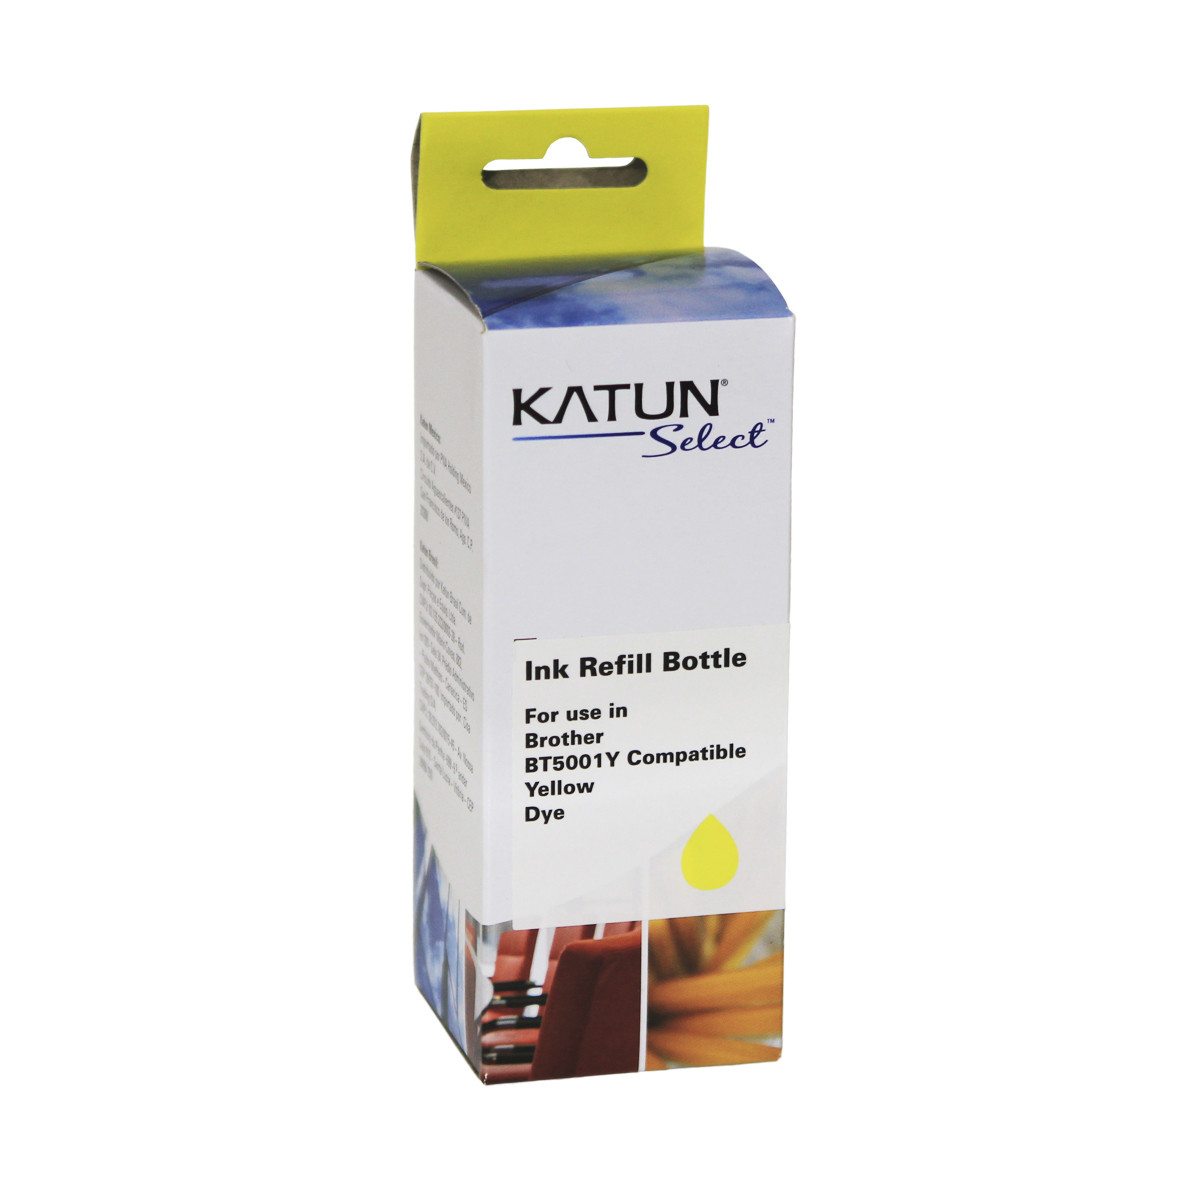 Tinta Compatível com Brother BT5001Y Amarelo | T-300 T-500W T-700W T-800W | Katun Select 100ml